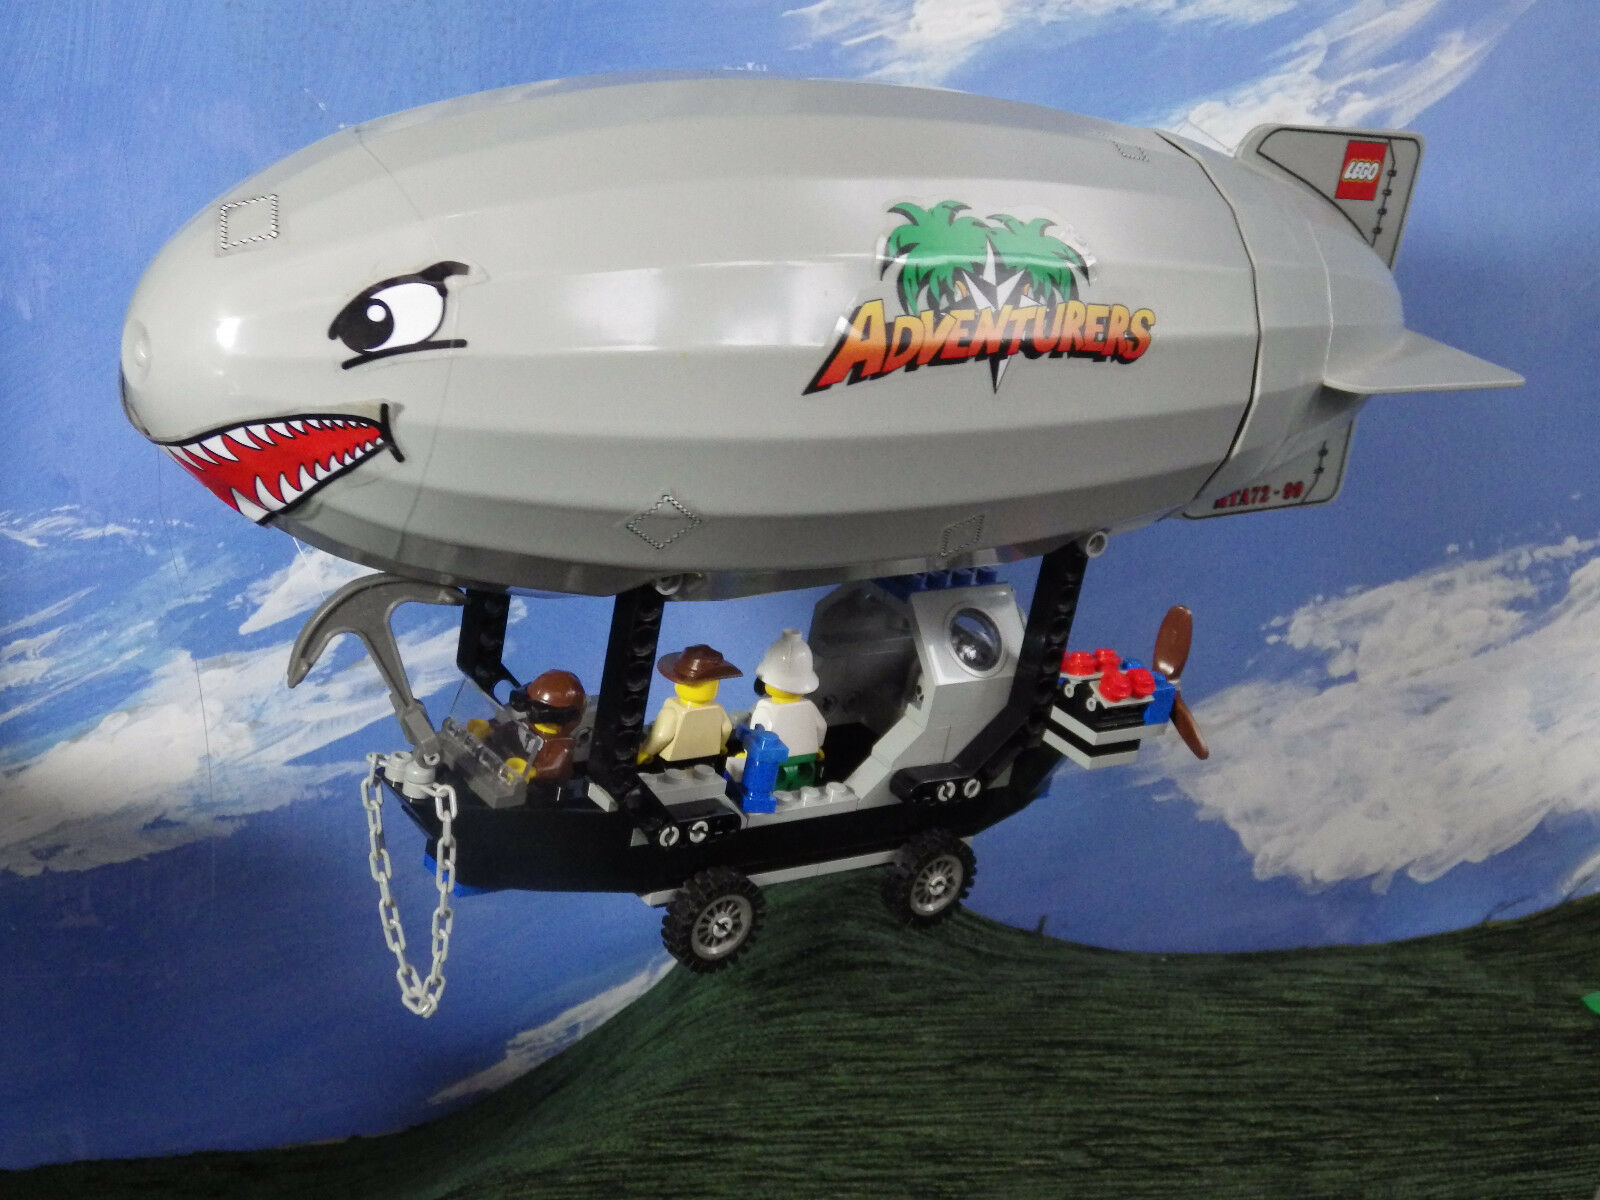 Lego 5956 Adventurers Expedition Balloon 100% Complete with Instructions